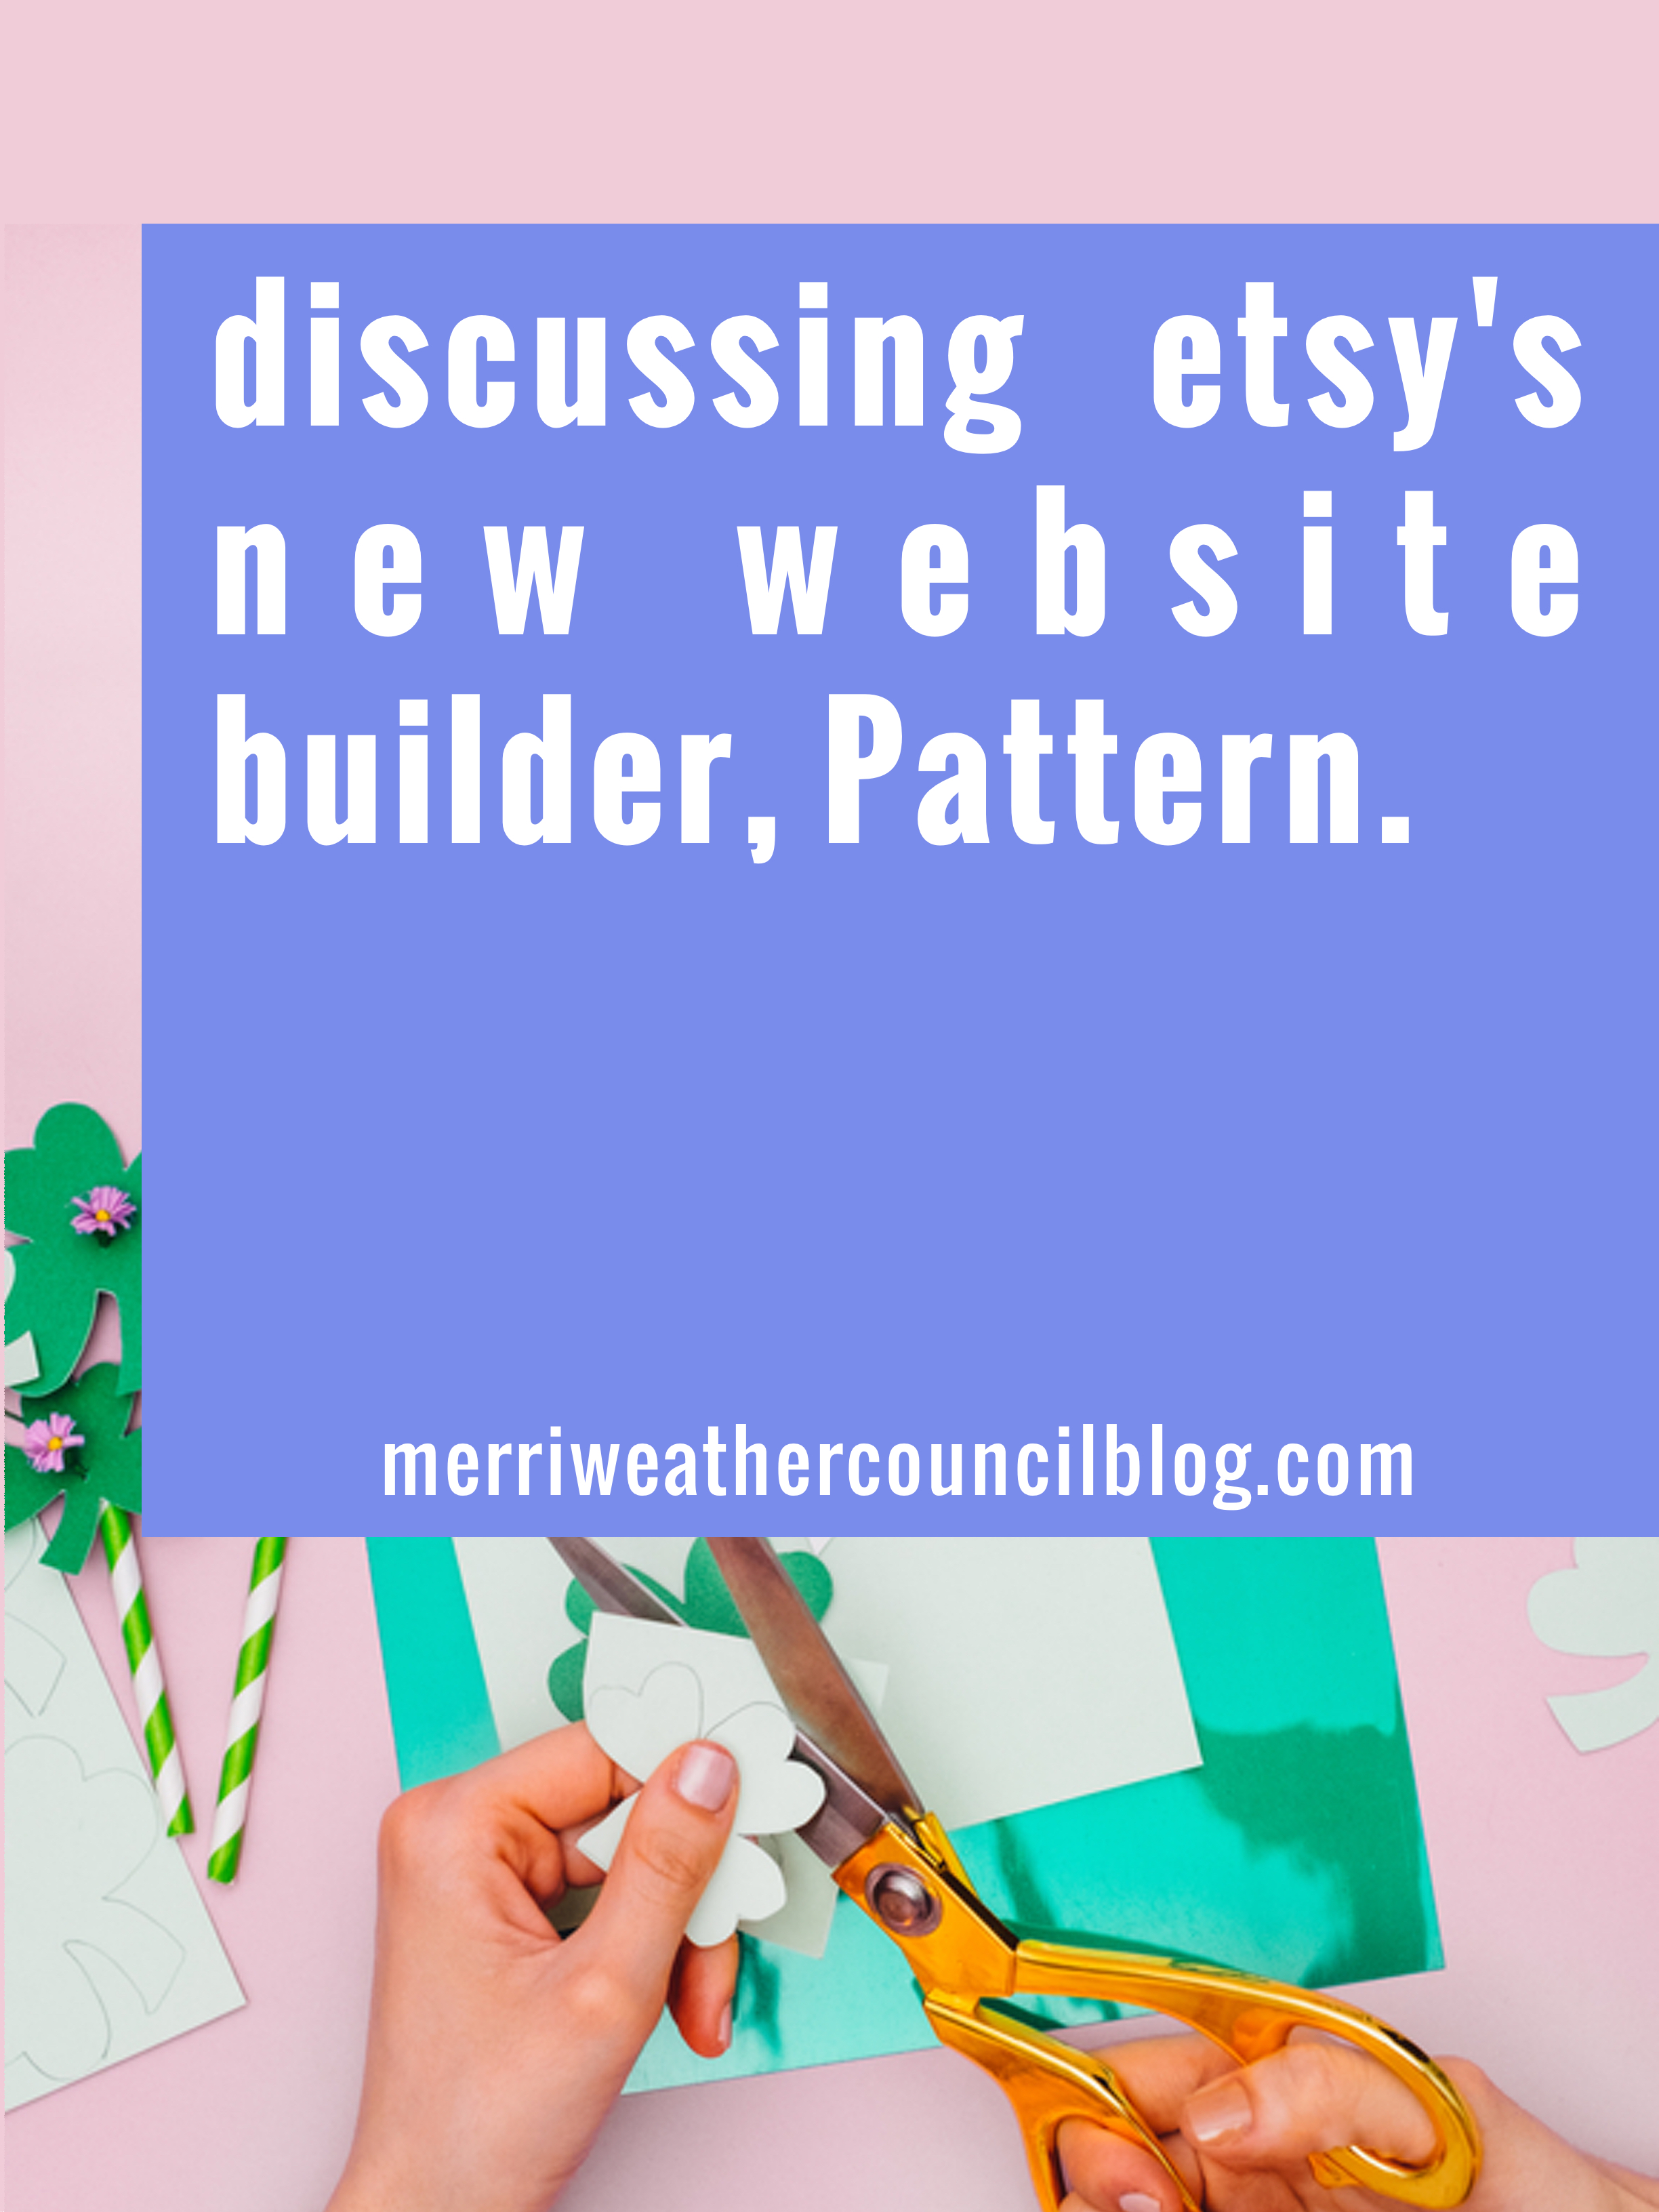 Pros cons and a discussion about etsy 39 s new website - Etsy bilder ...